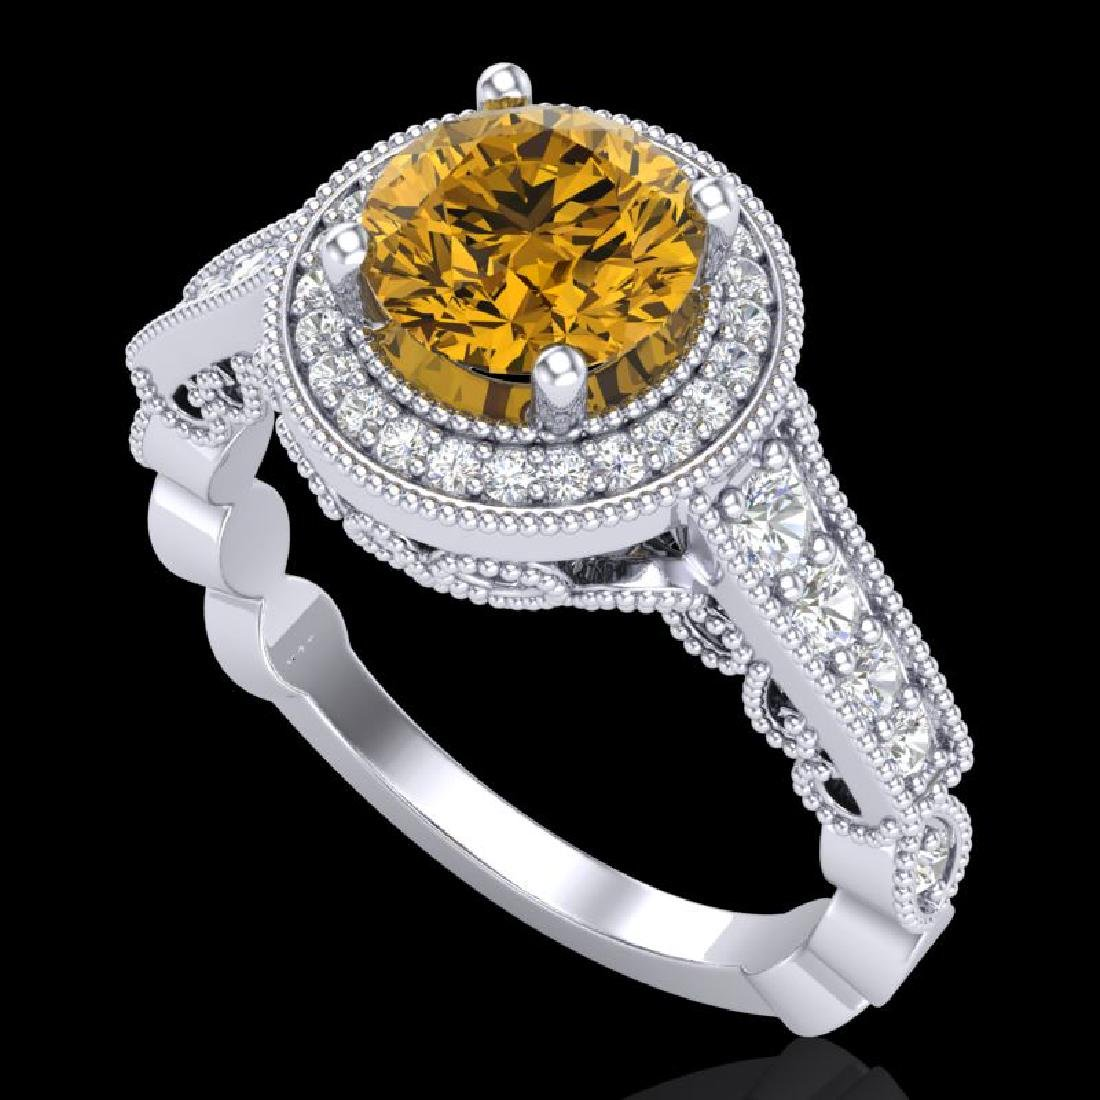 1.91 CTW Intense Fancy Yellow Diamond Engagement Art